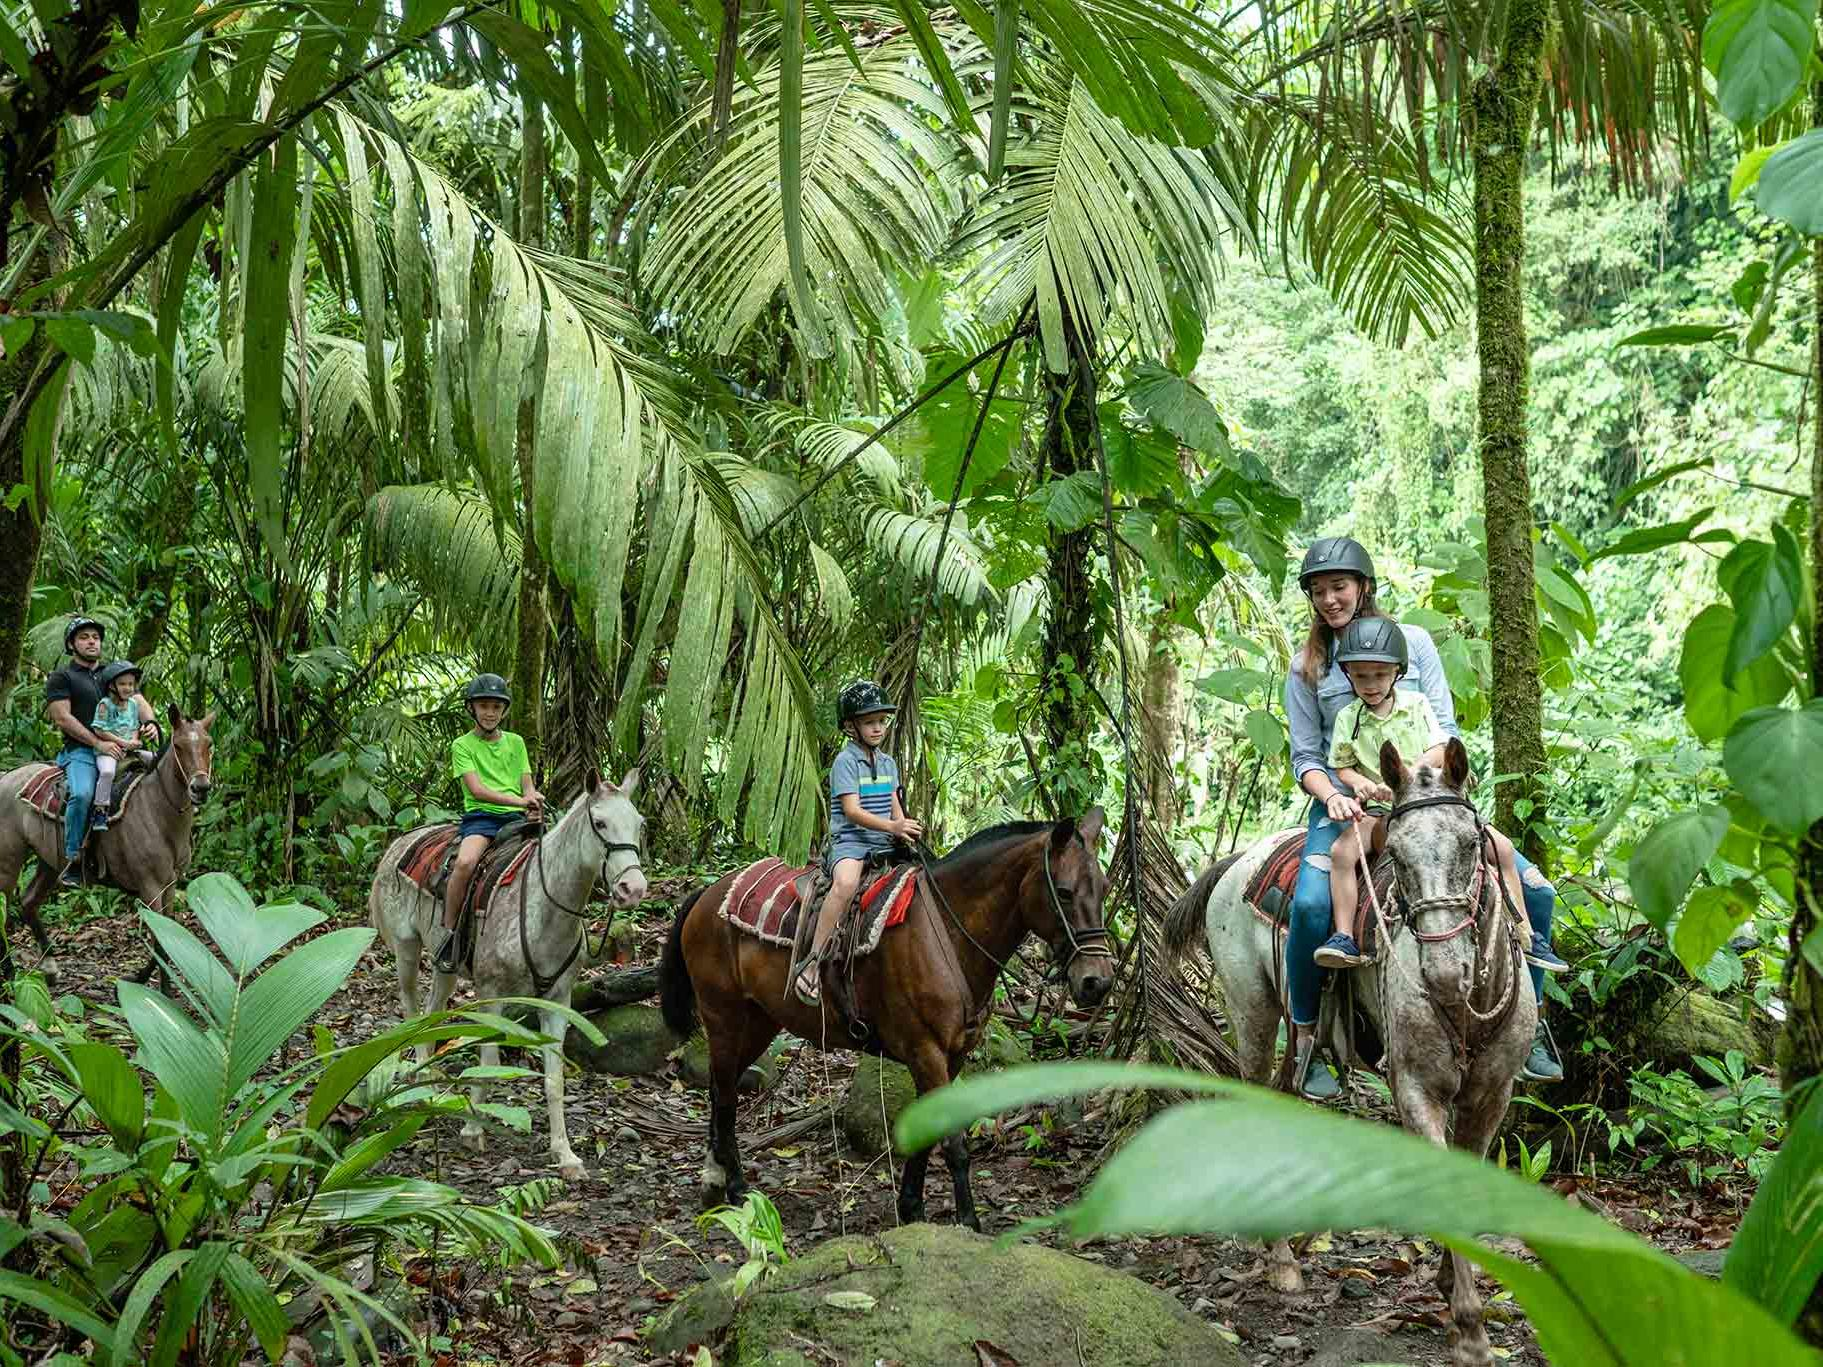 group of guests horseback riding in rainforest